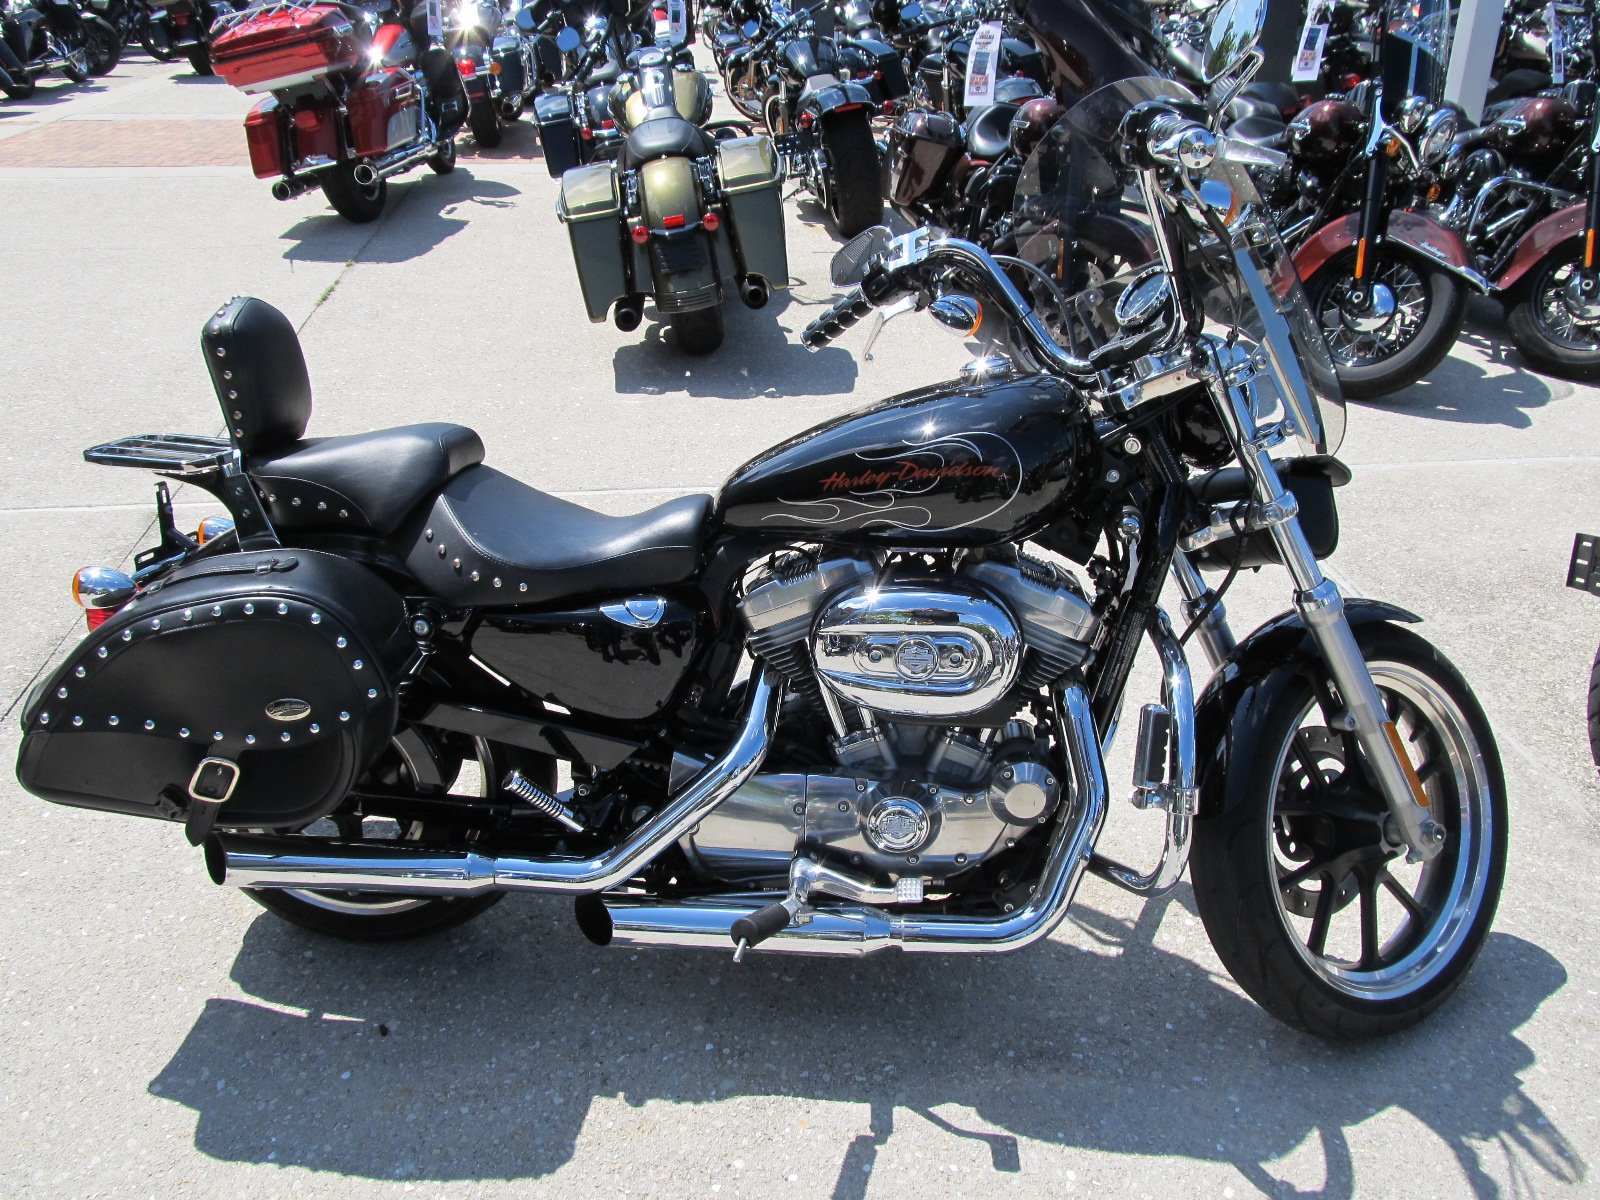 Pre-Owned 2011 Harley-Davidson Sportster 883 Superlow XL883L